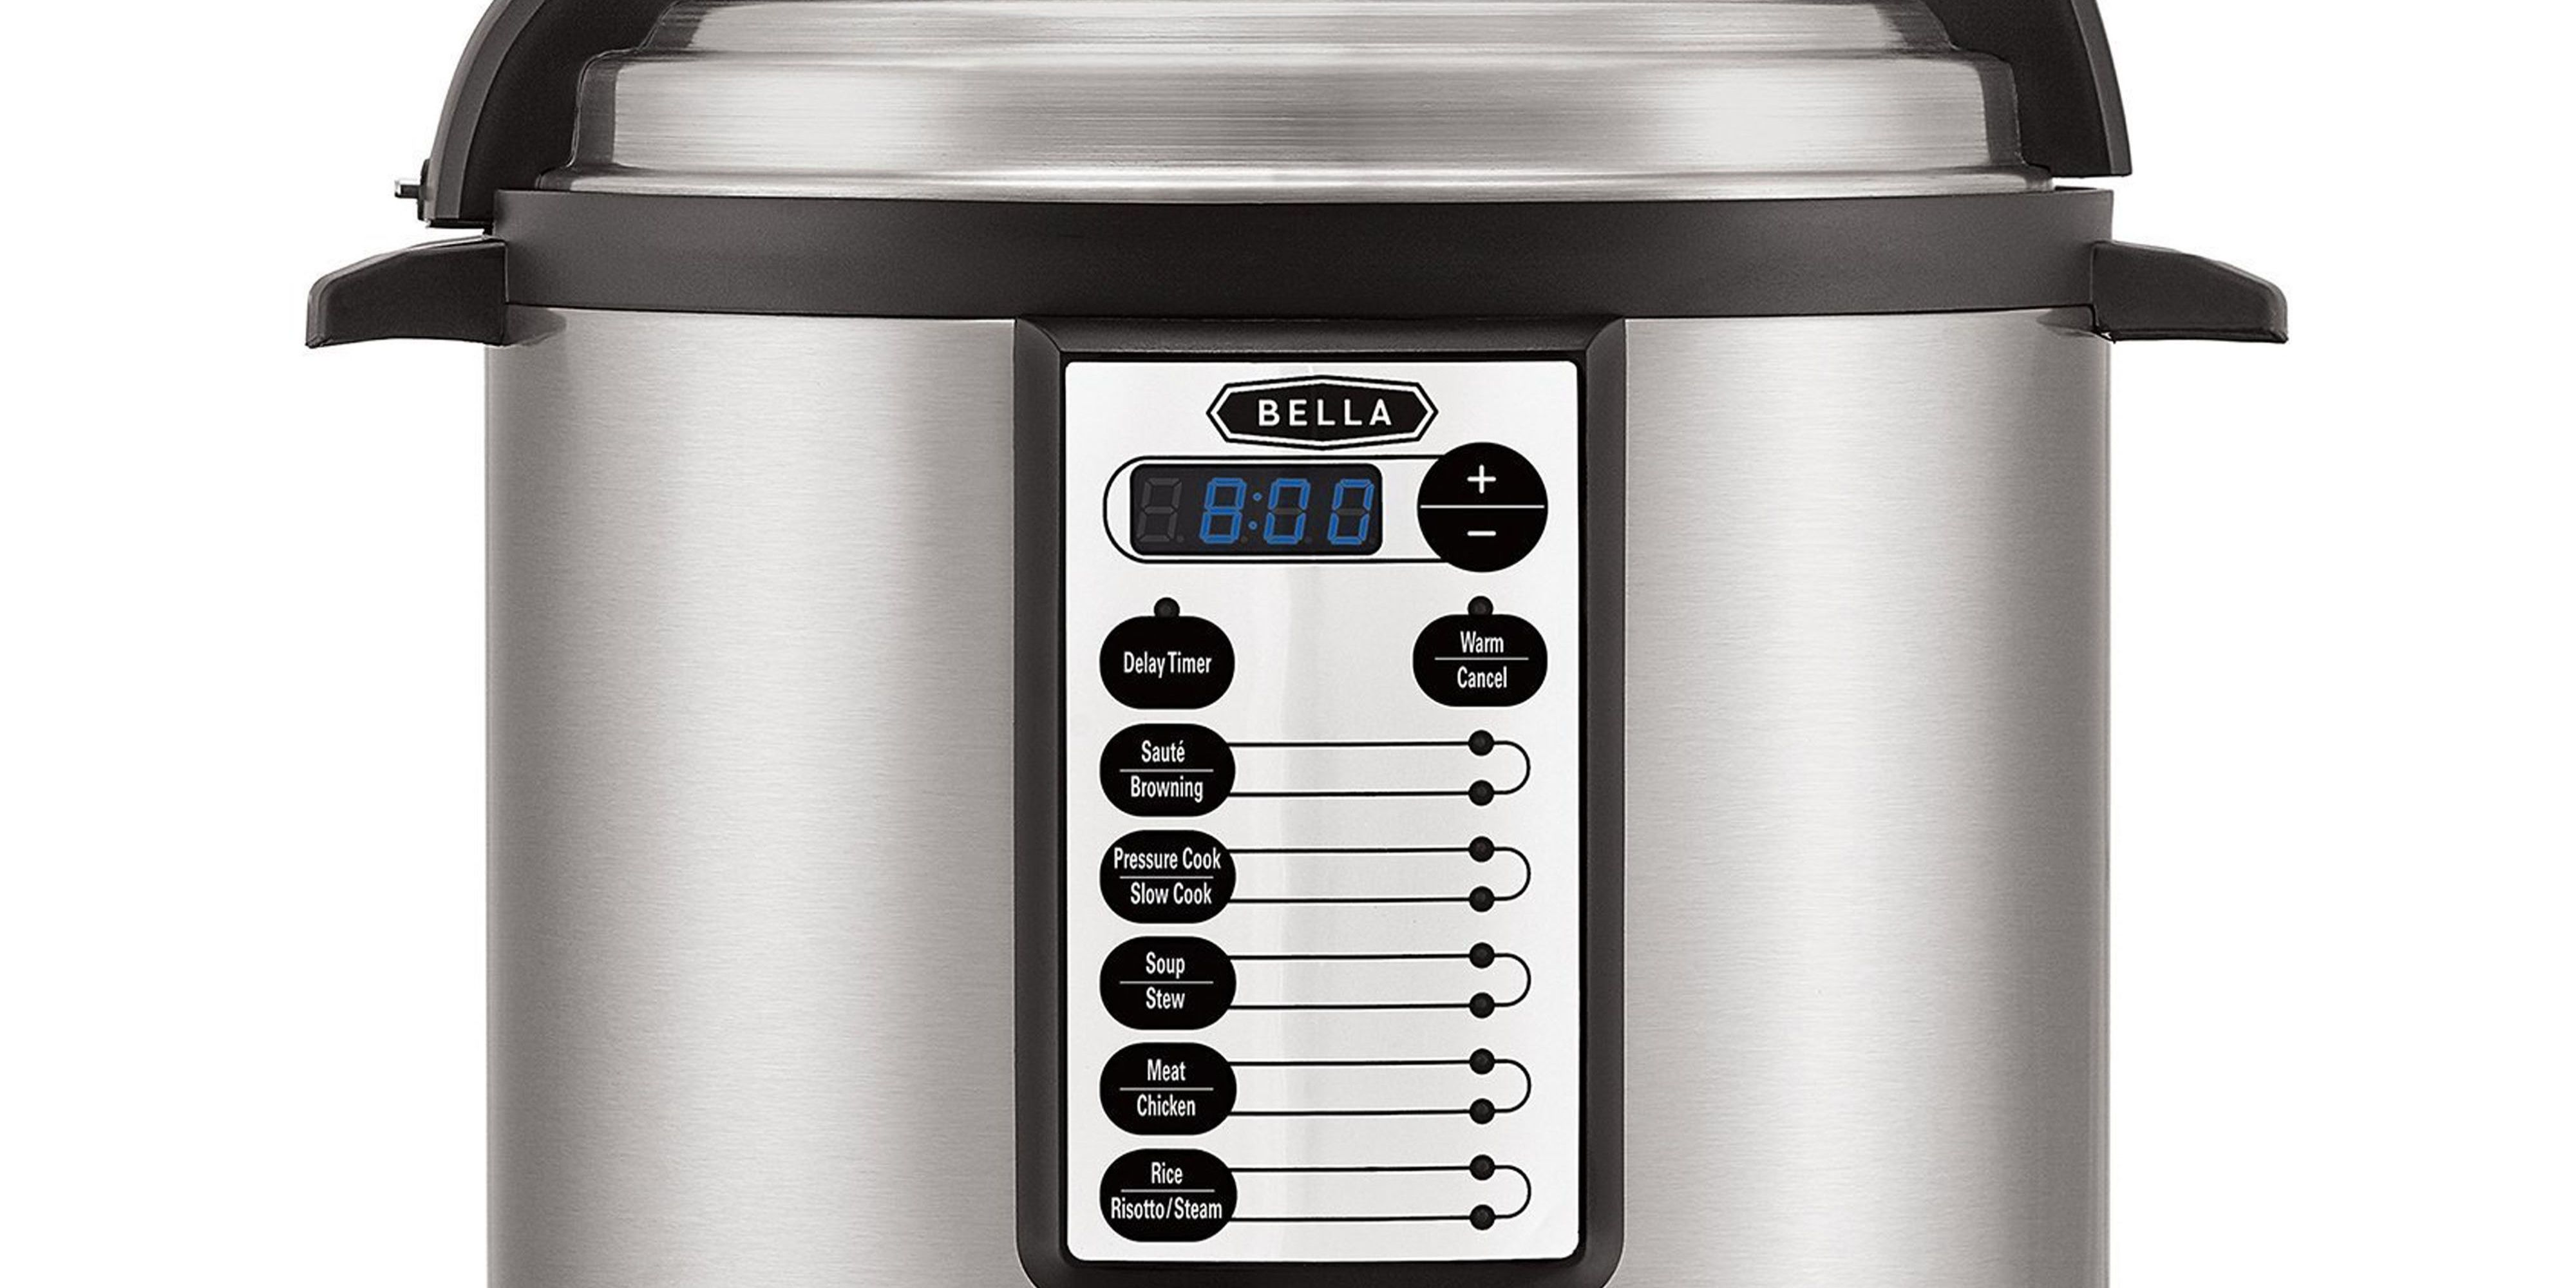 Bella Pressure Cooker Review, Price And Features   Pros And Cons Of Bella  Pressure Cooker